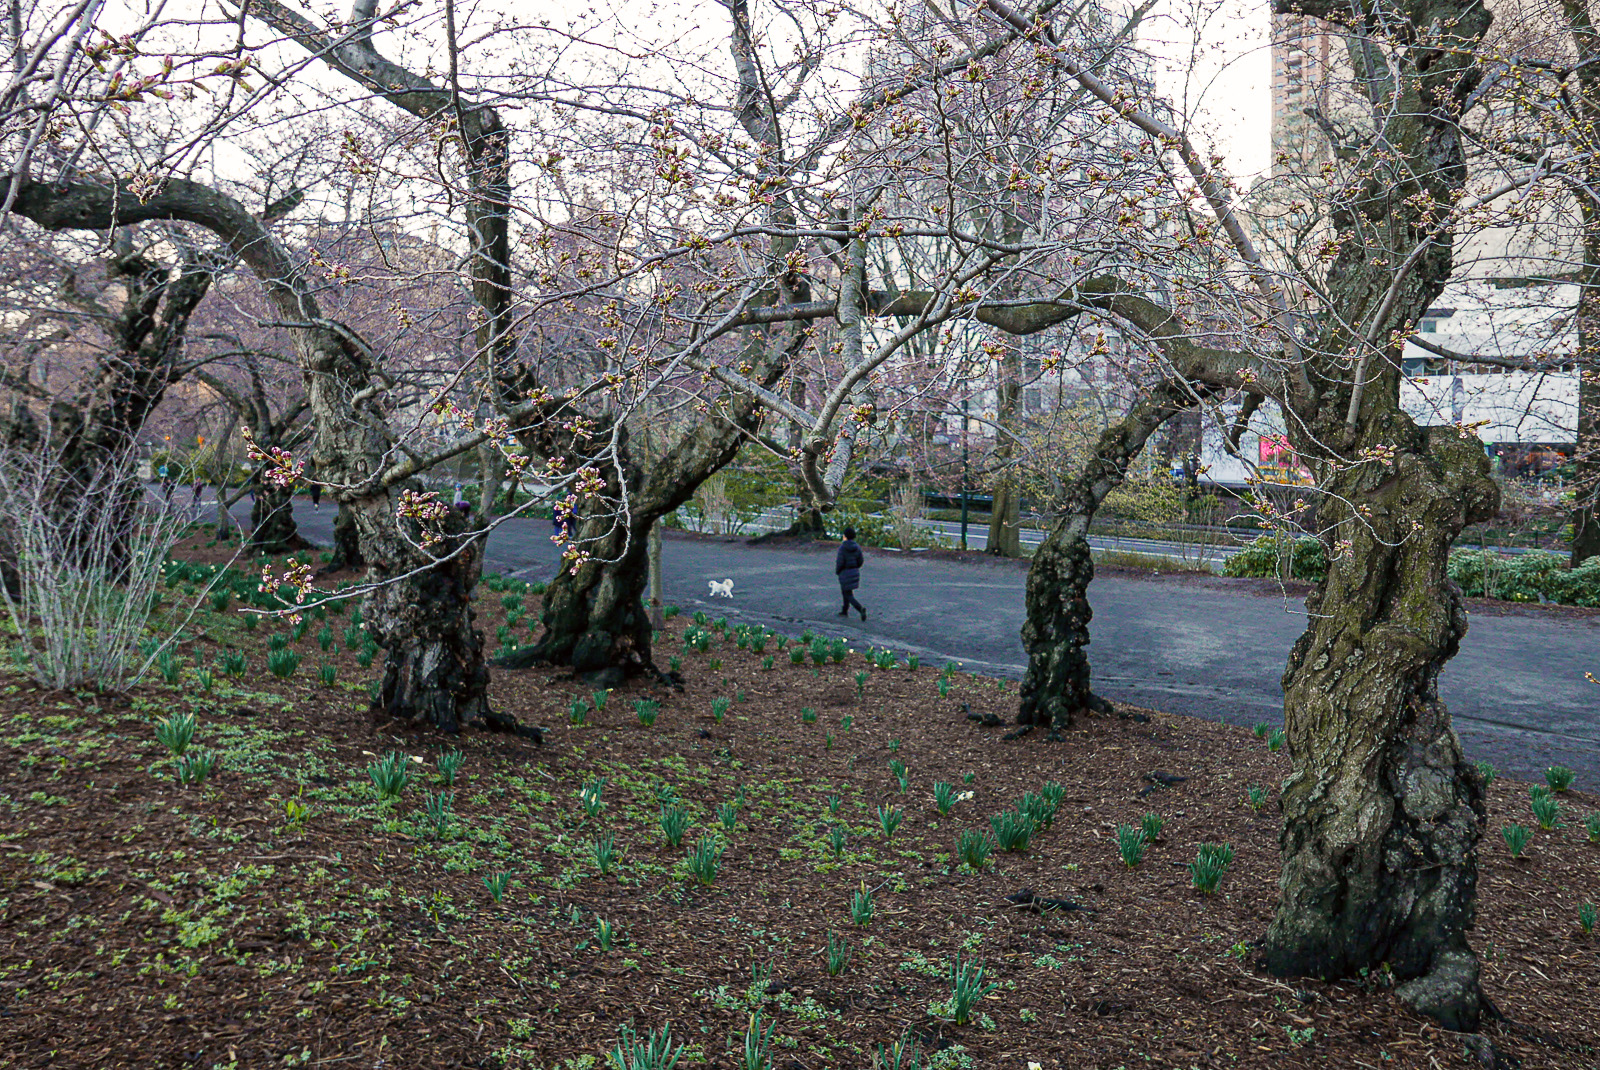 The Bridle Path, Upper East Side, Central Park.